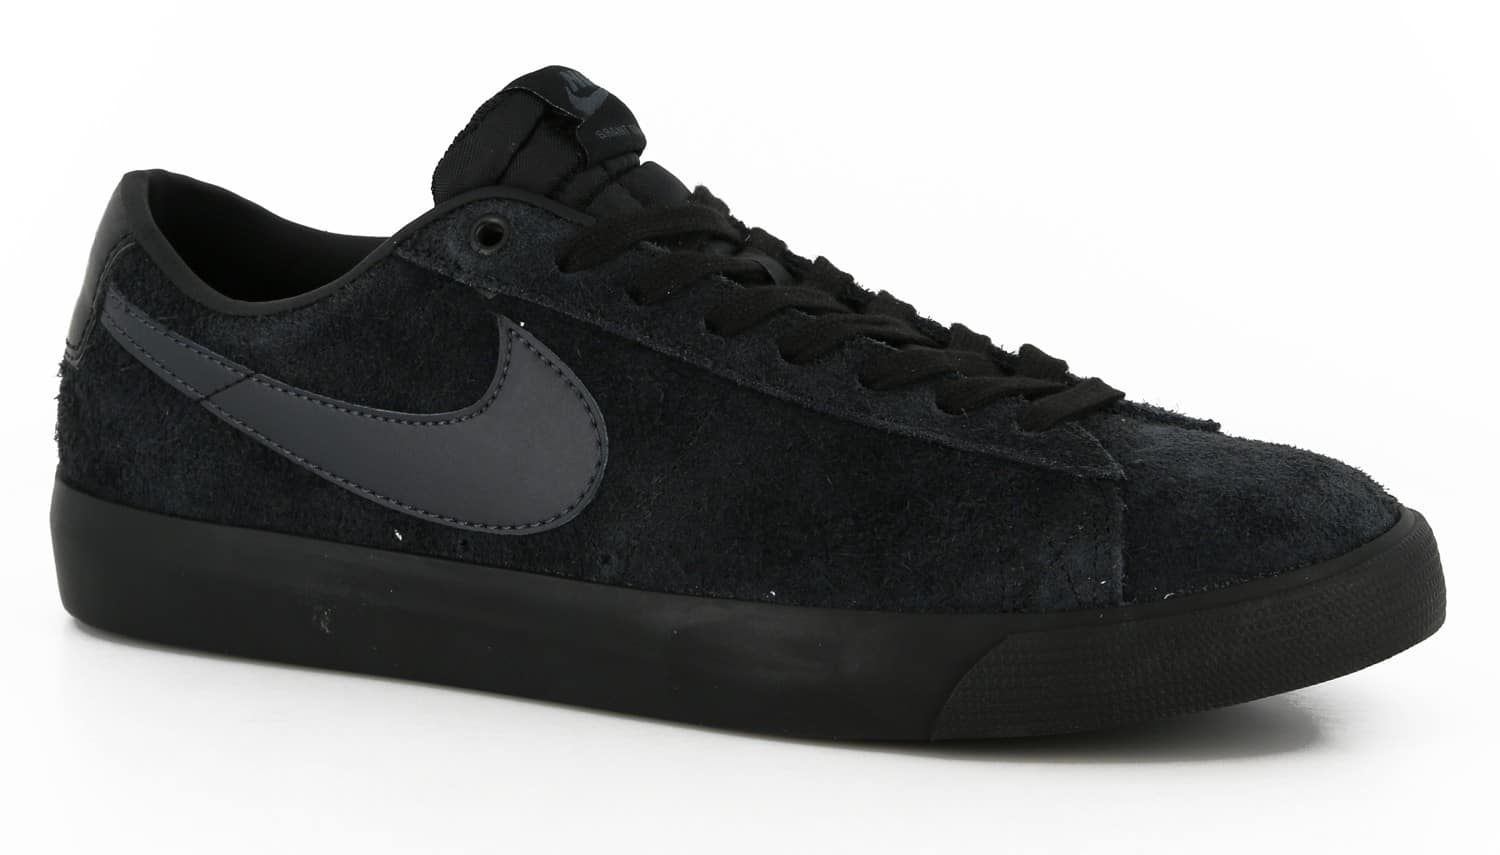 nike sb blazer low nike air max 10 chaussures. Black Bedroom Furniture Sets. Home Design Ideas